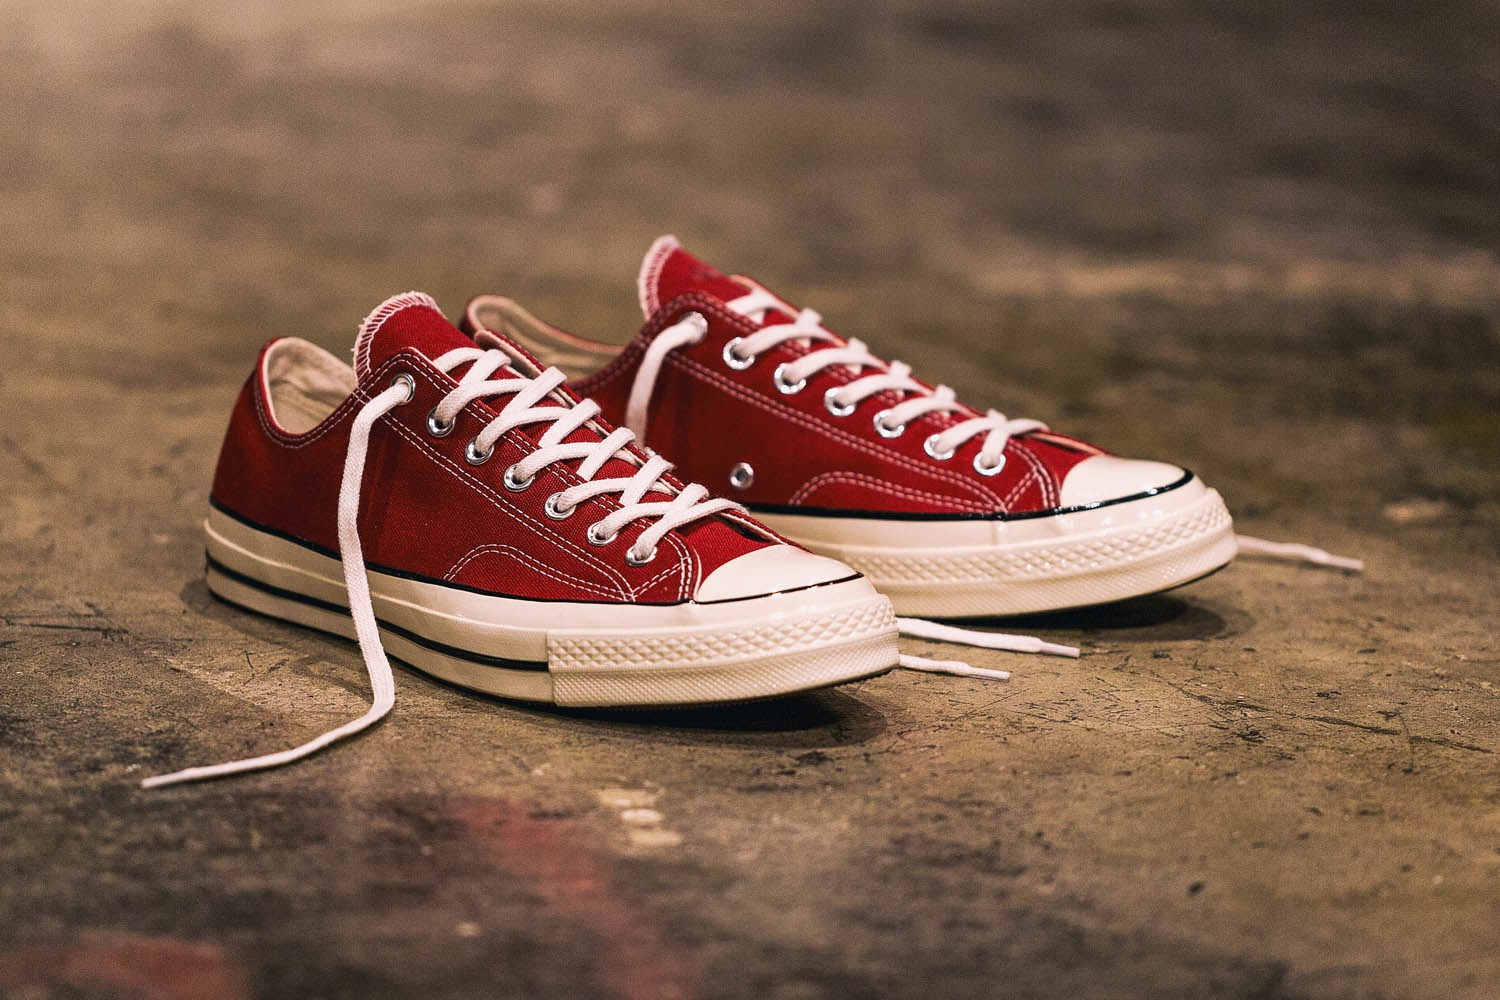 converse-shows-its-colors-with-its-latest-chuck-taylor-all-star-70s-release-12